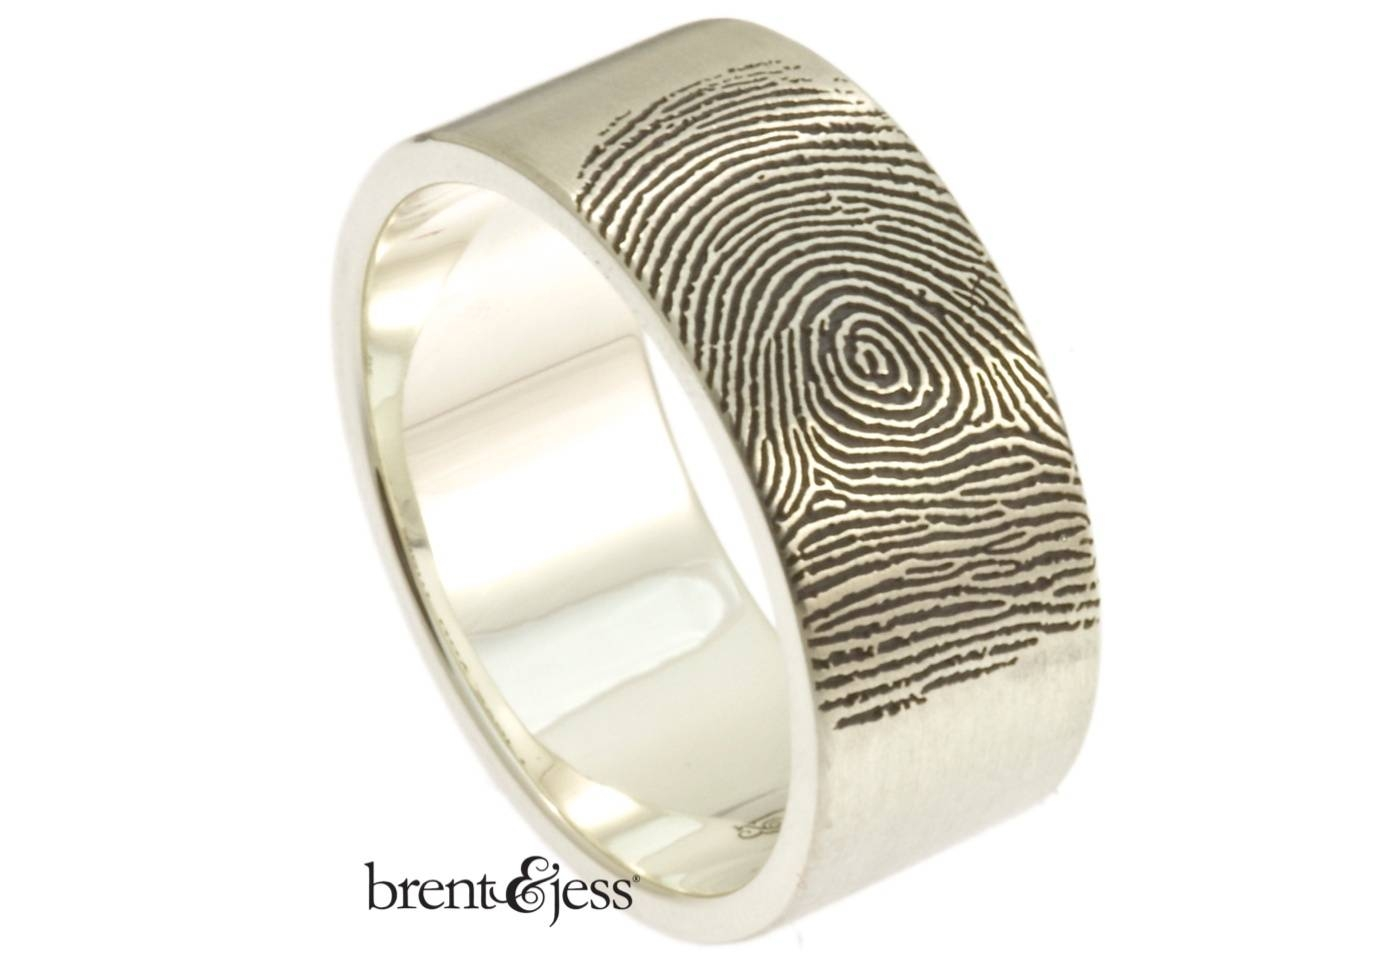 Modern Wedding Rings – Brent&jess Blog – A Spotlight On Our Throughout Modern Design Wedding Rings (Gallery 9 of 15)